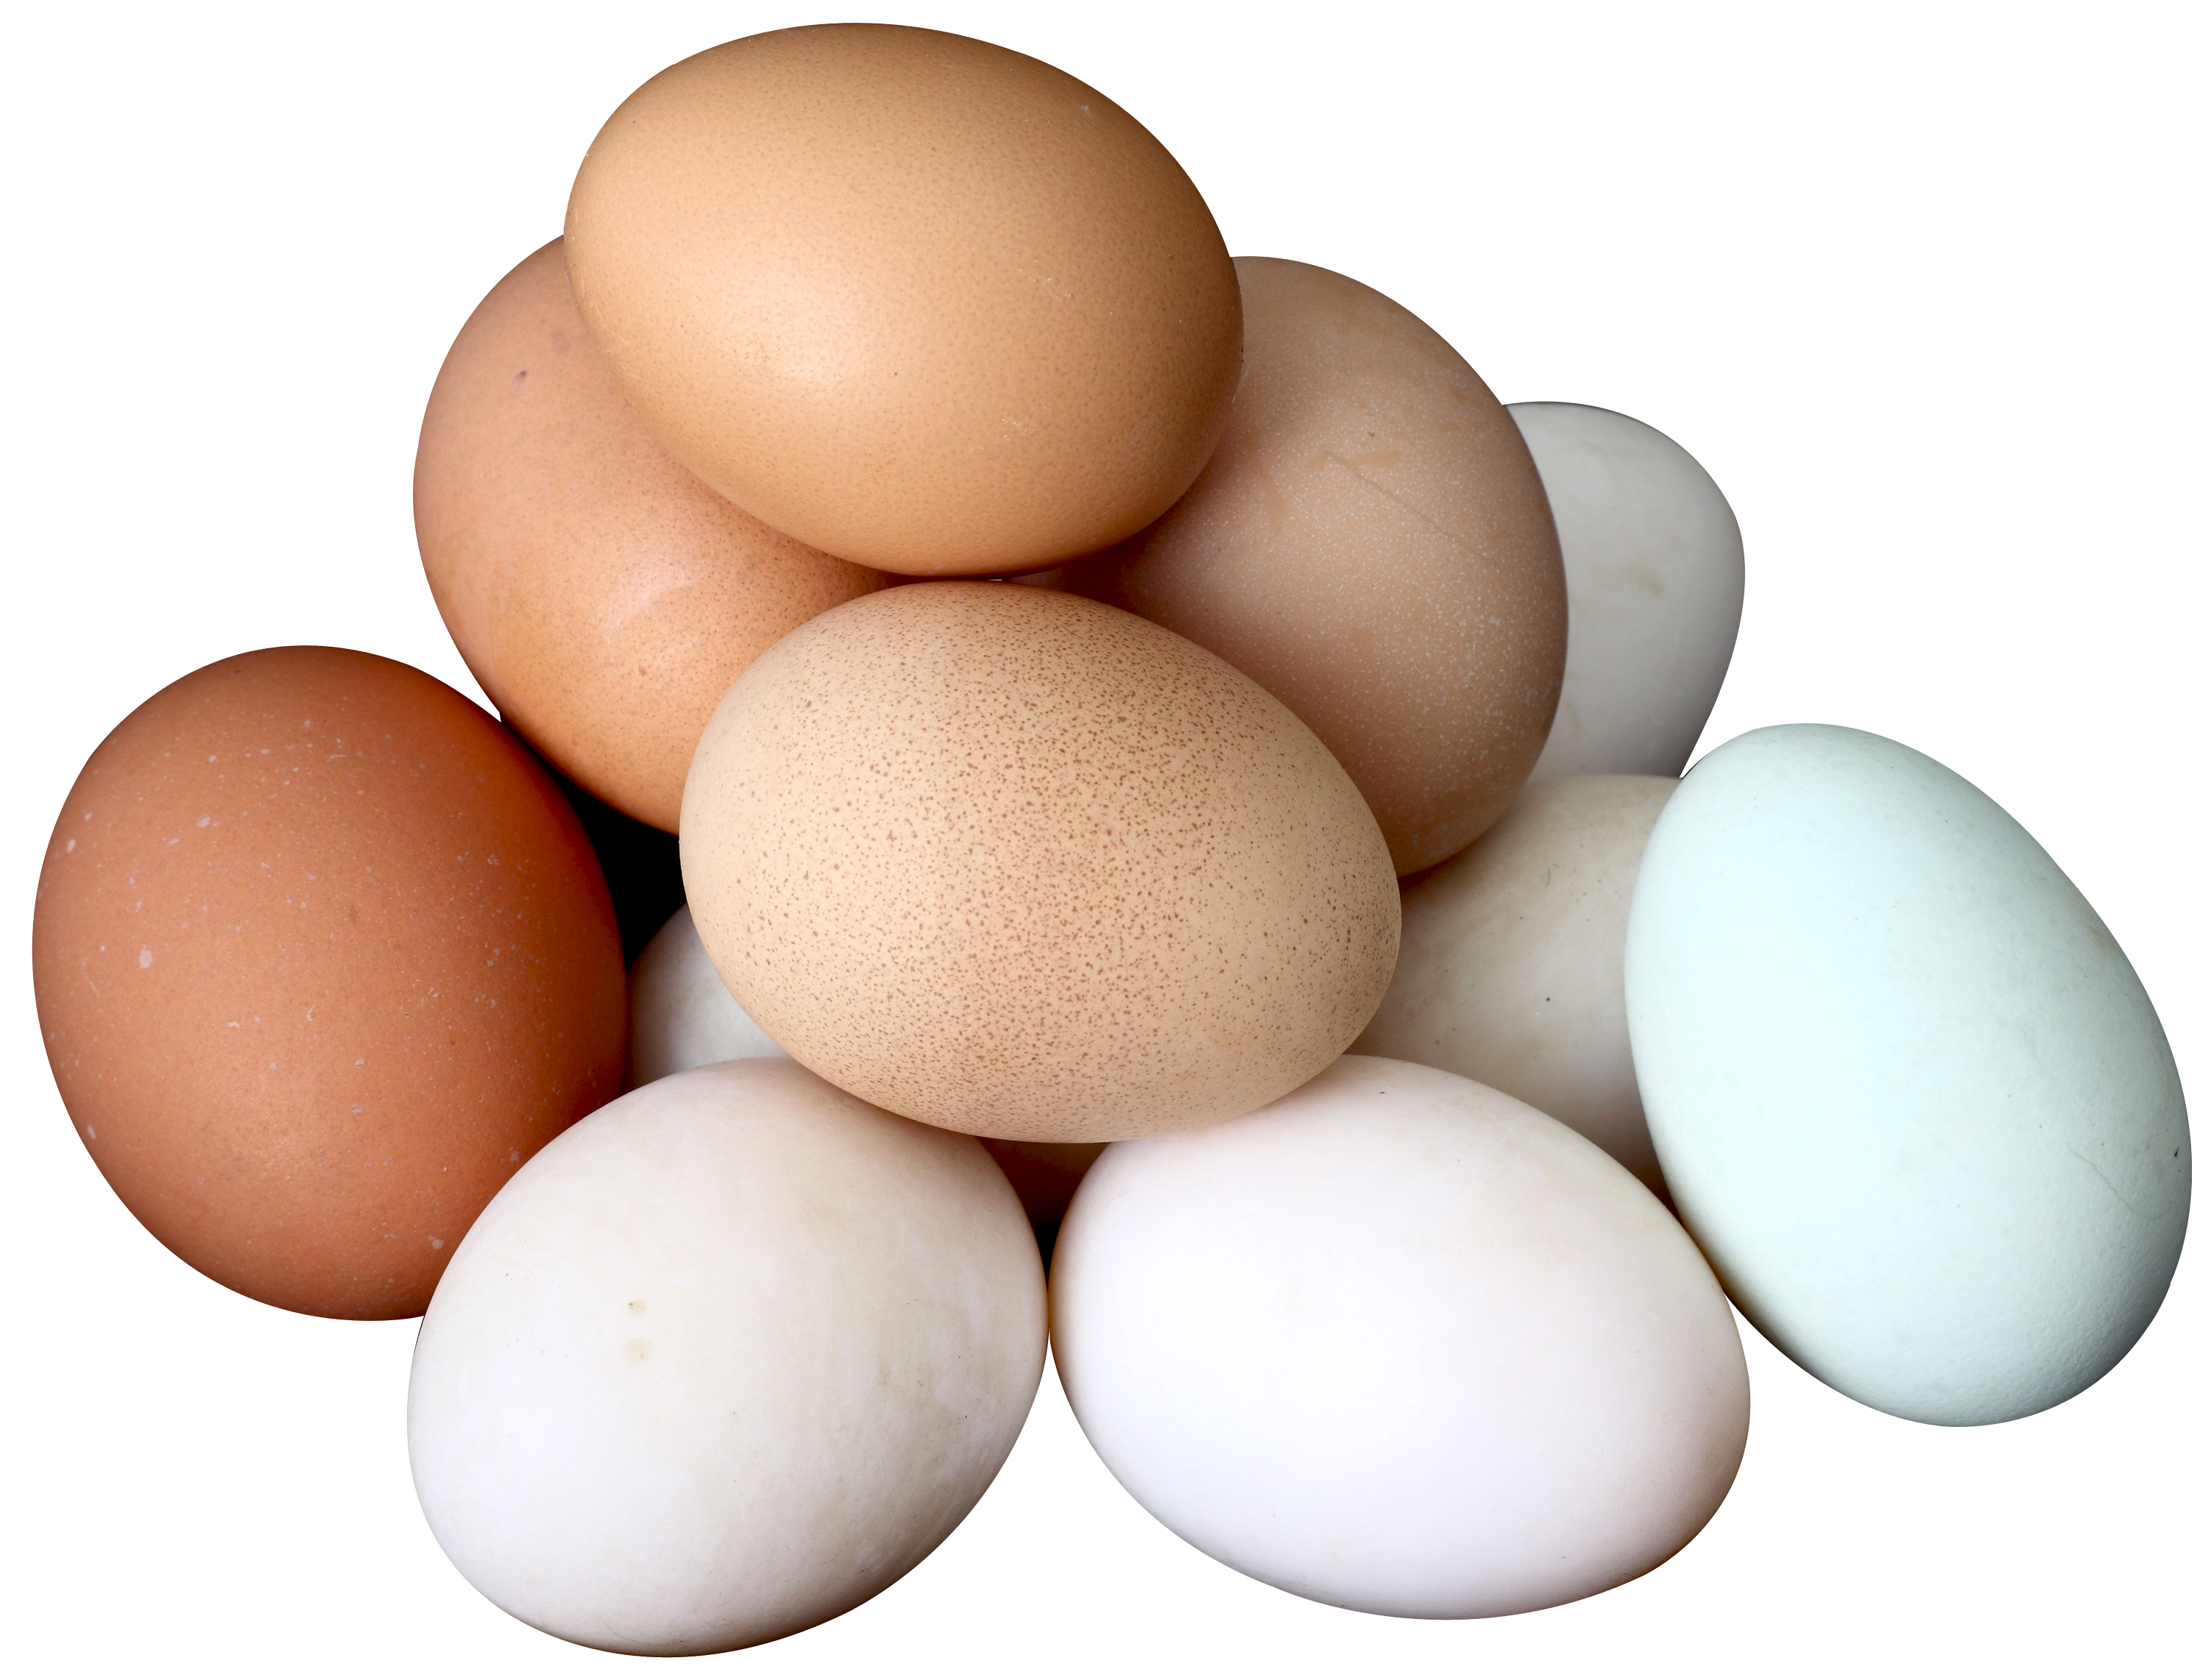 Egg PNG - 18567